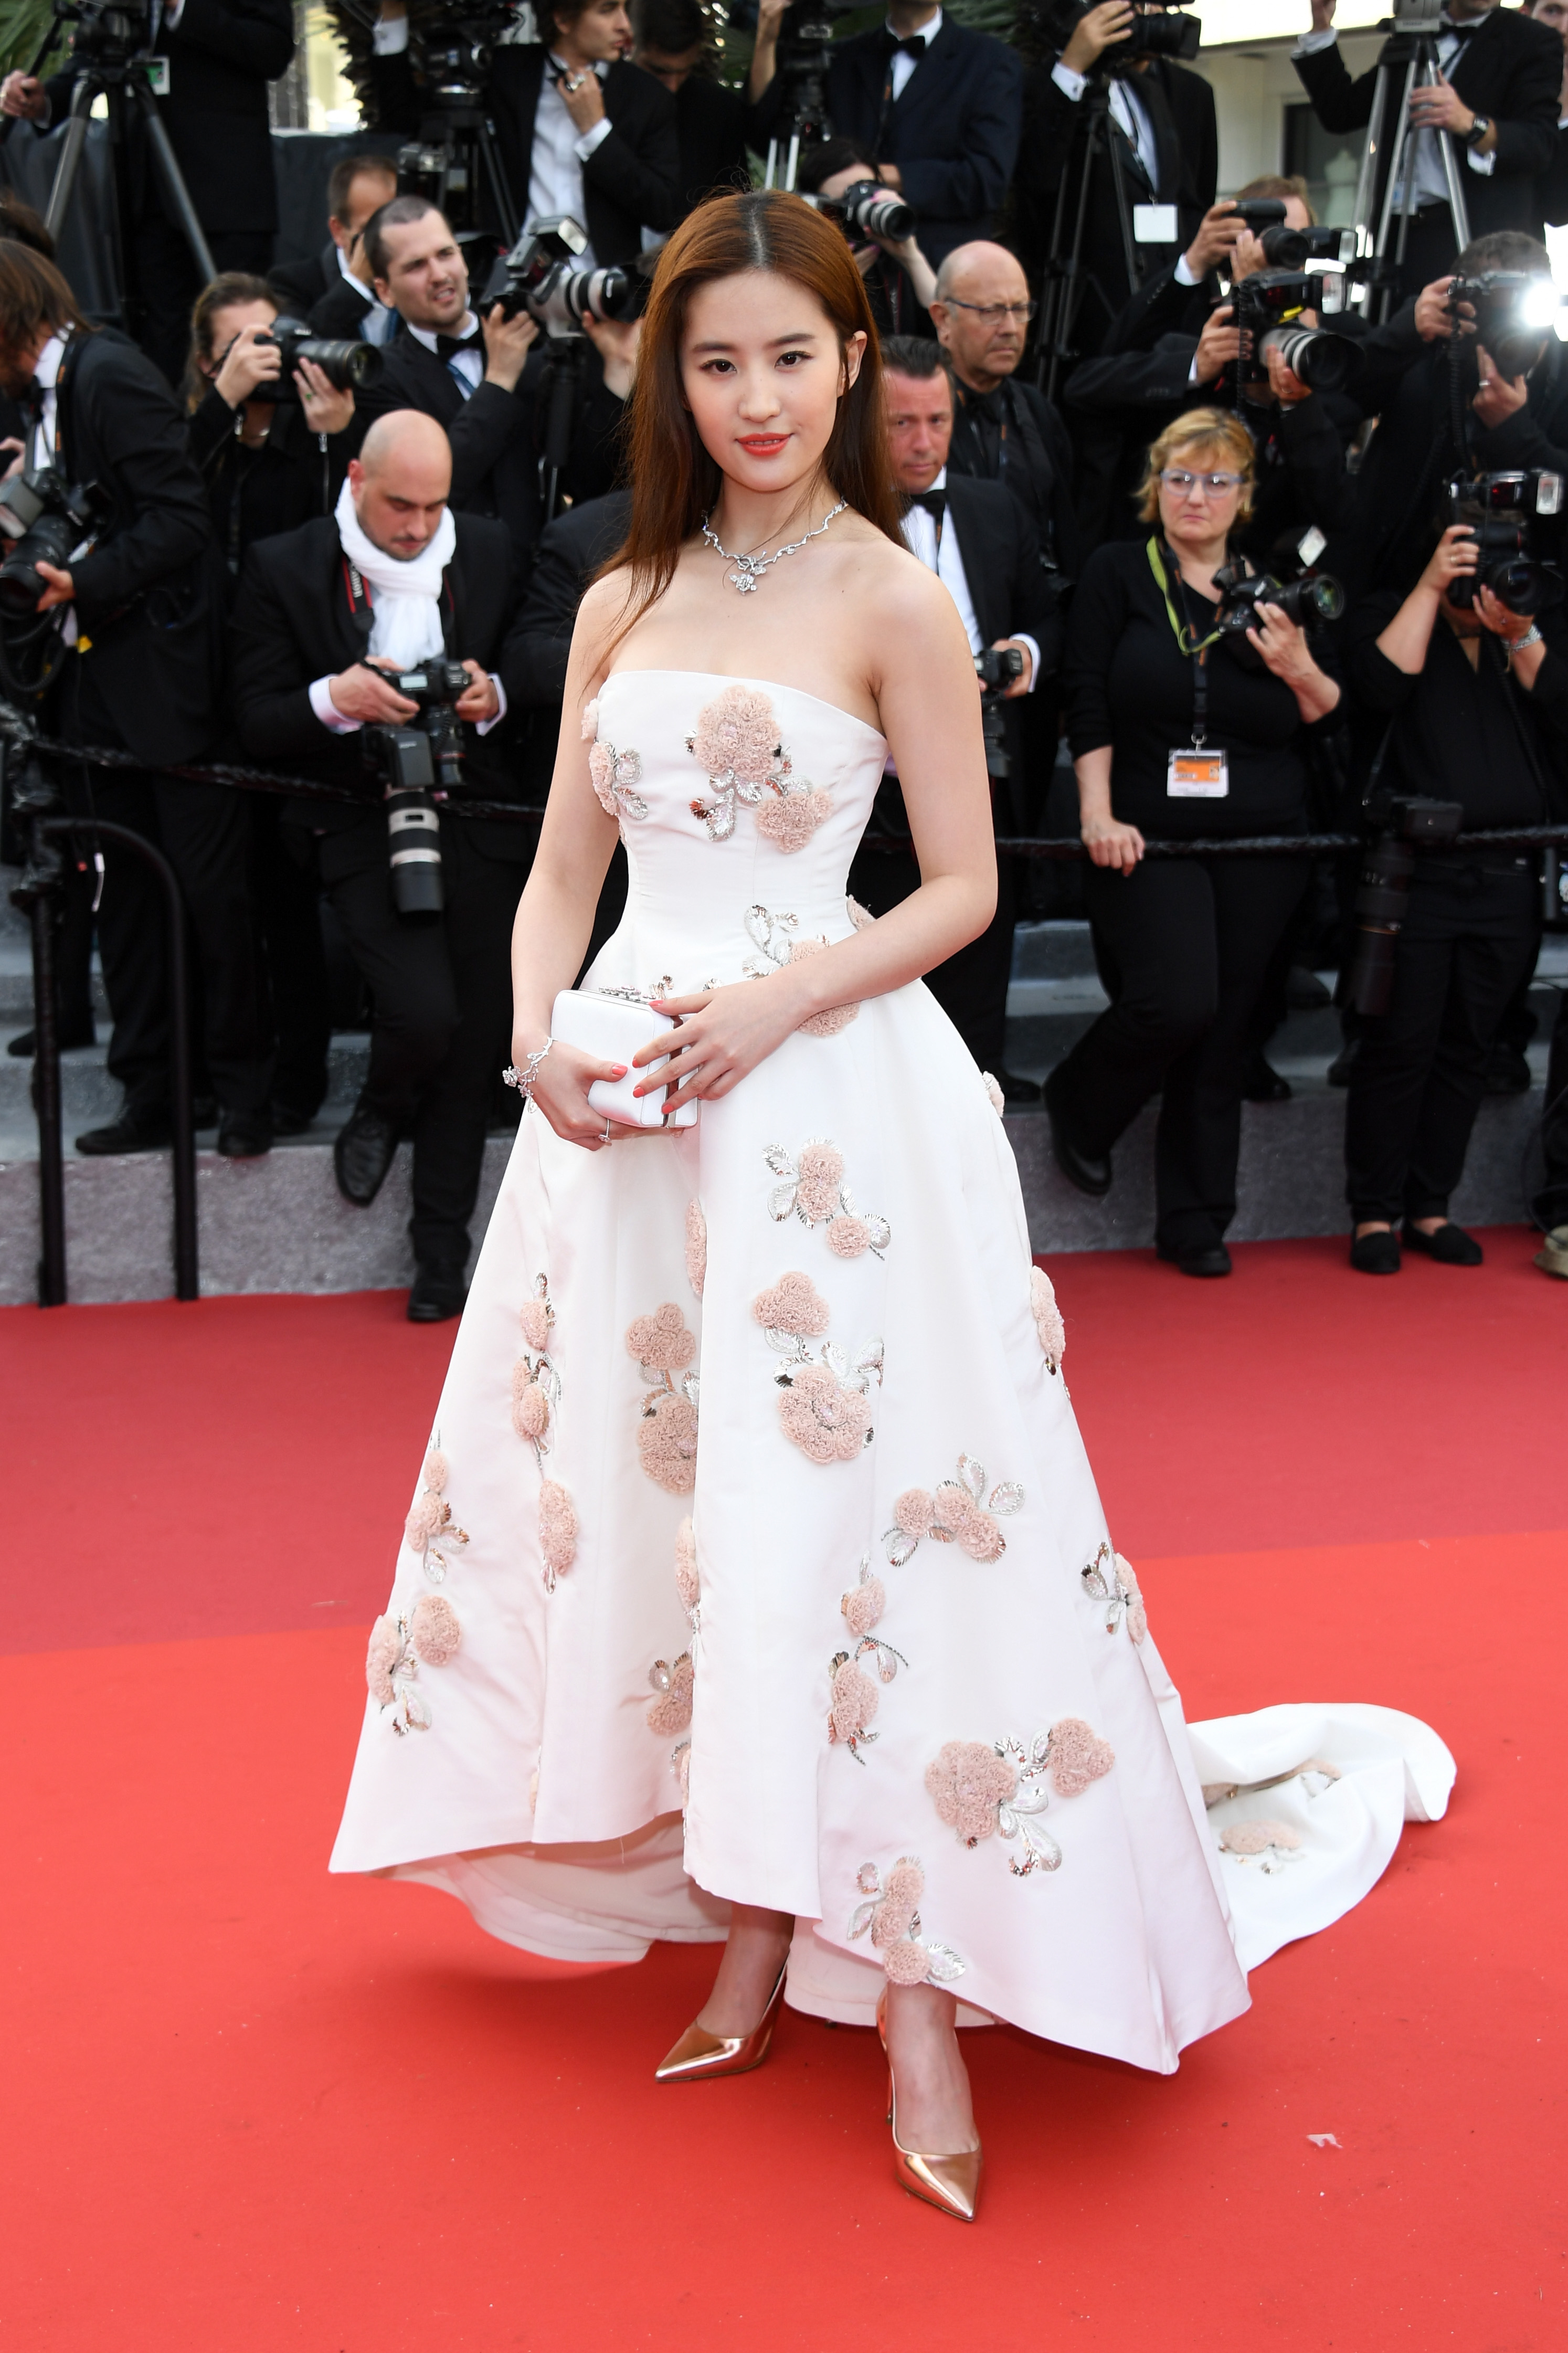 """CANNES, FRANCE - MAY 11: Actress Liu Yifei attends the """"Cafe Society"""" premiere and the Opening Night Gala during the 69th annual Cannes Film Festival at the Palais des Festivals on May 11, 2016 in Cannes, France. (Photo by Venturelli/WireImage)"""